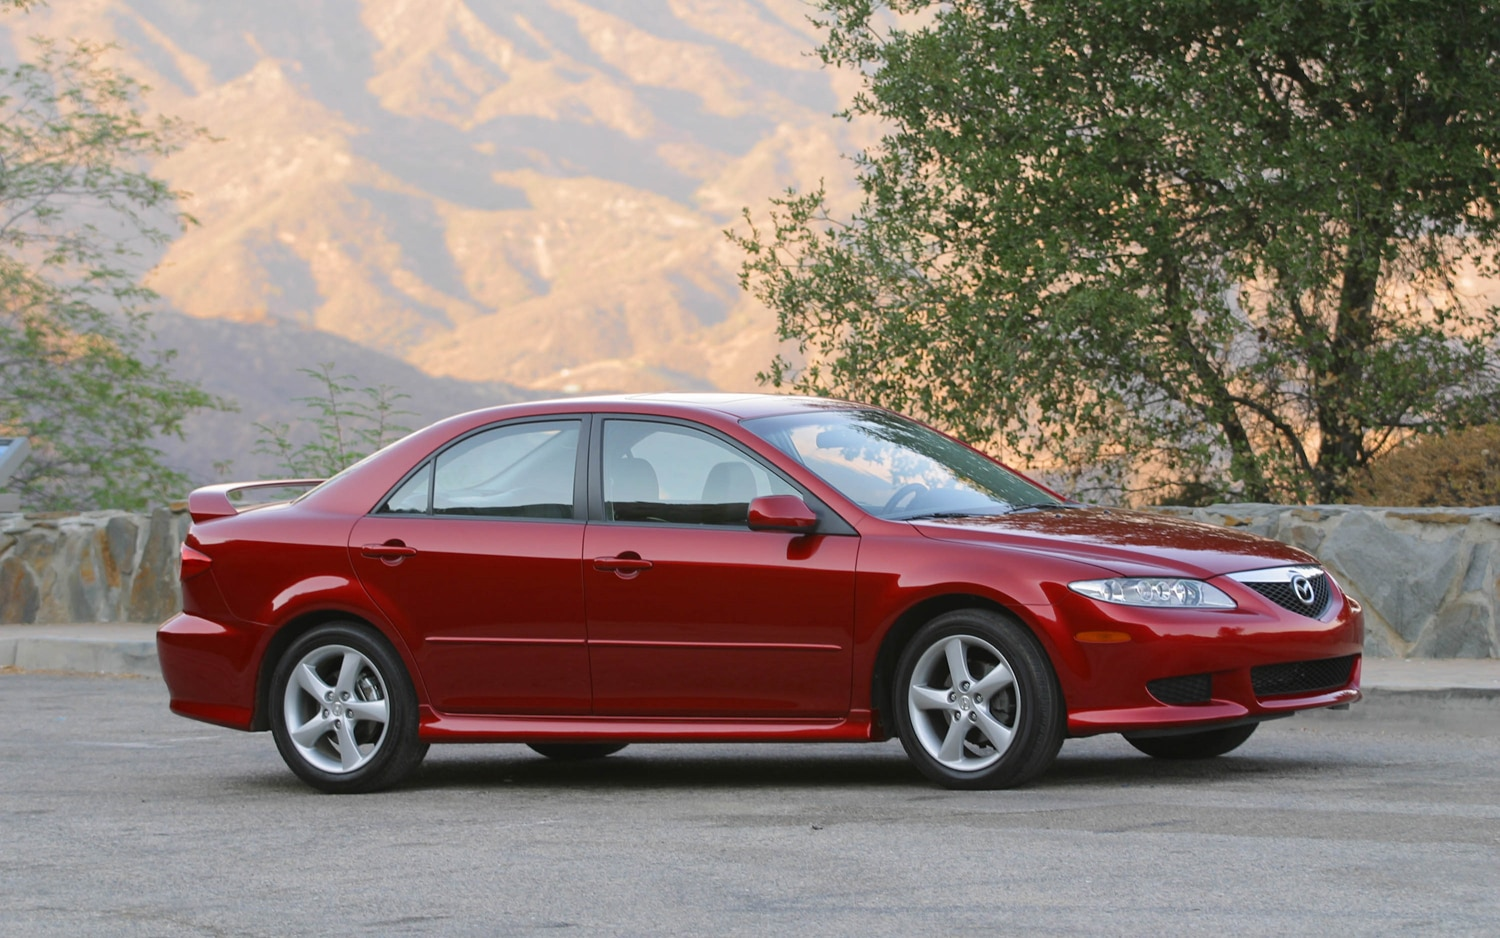 Florida Mazda Dealers >> Honda, Nissan, and Mazda Recall Cars for Airbag Defect ...